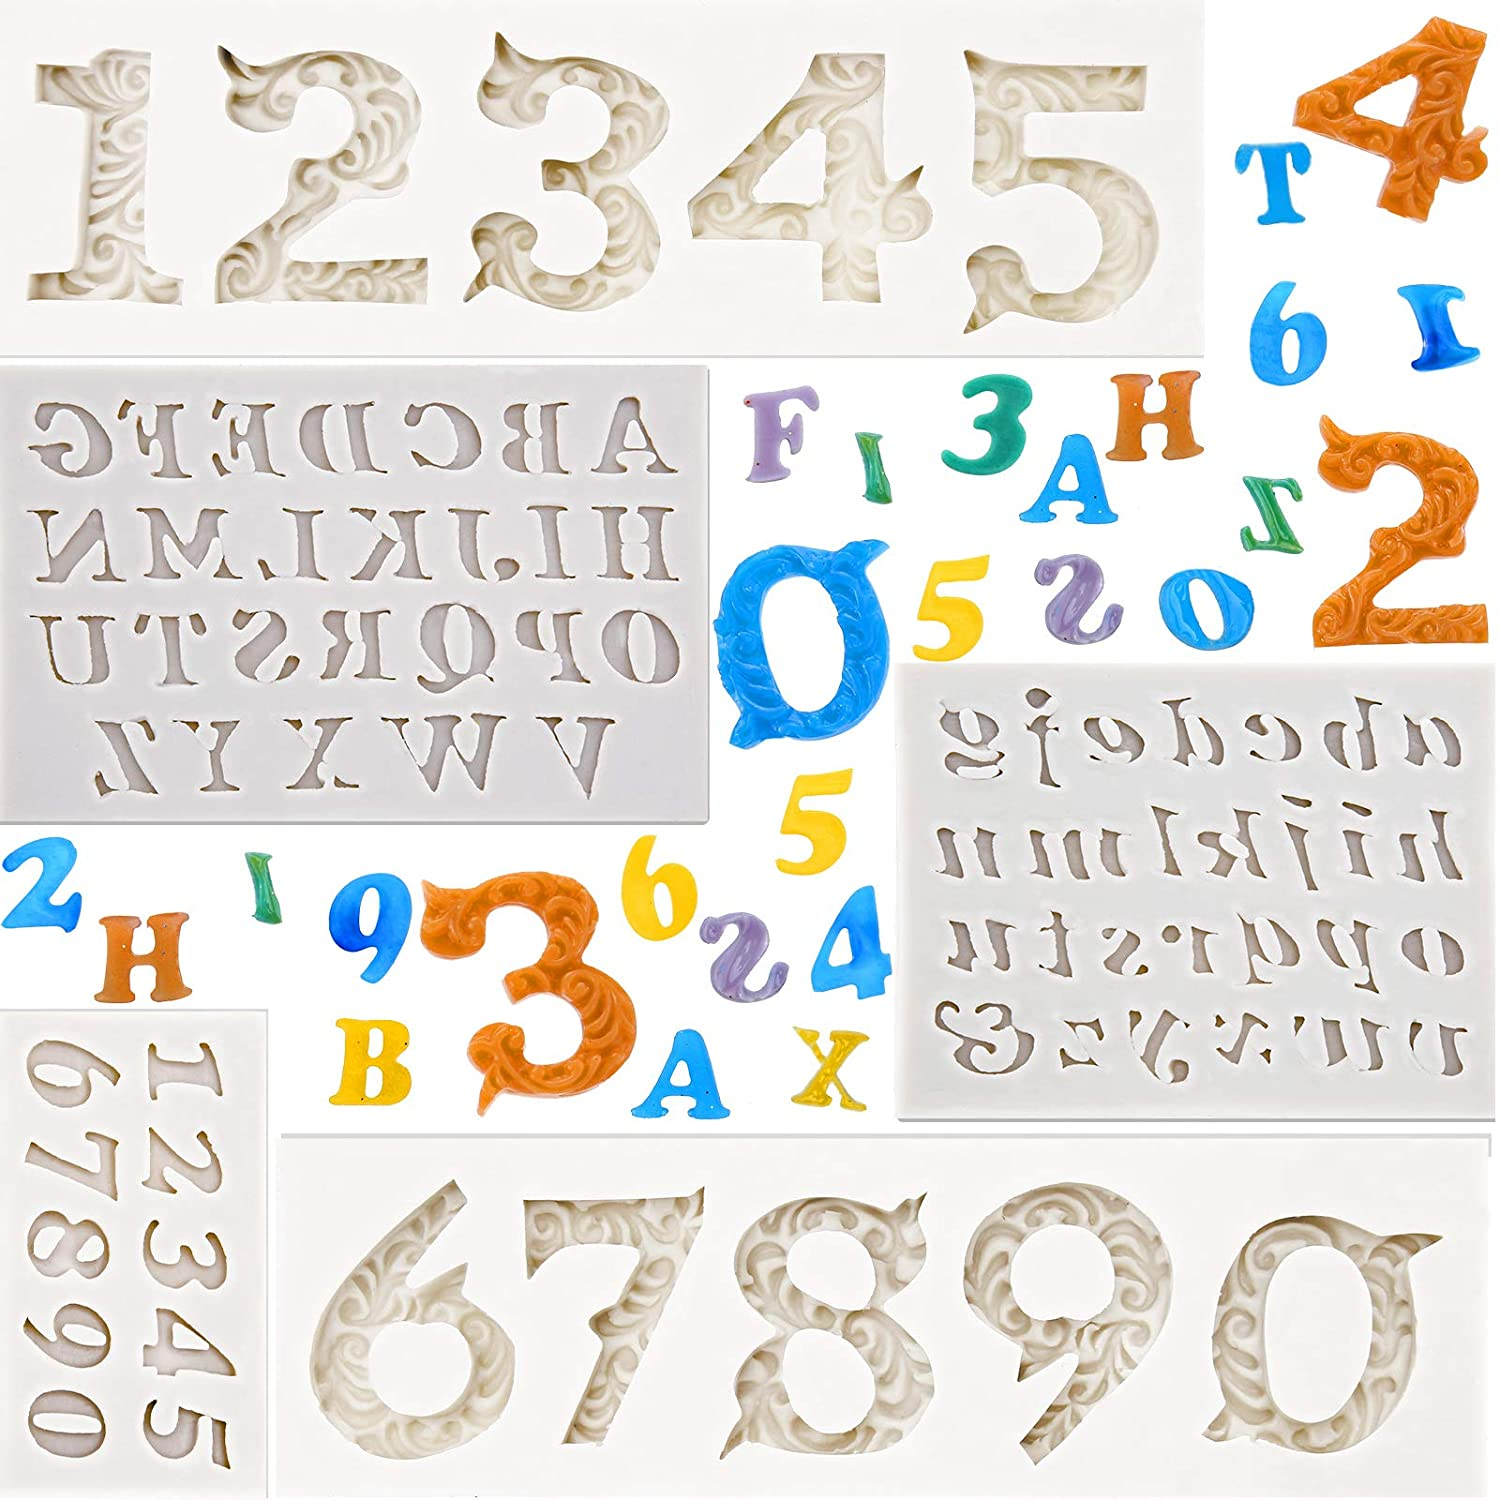 5 Pieces Silicone Number Letter Mold 3D Embossed Number Silicone Mold Letters Silicone Fondant Mold for DIY Topper Cake Decorating Sugar Chocolate Cookies Polymer Clay and Crafting Projects